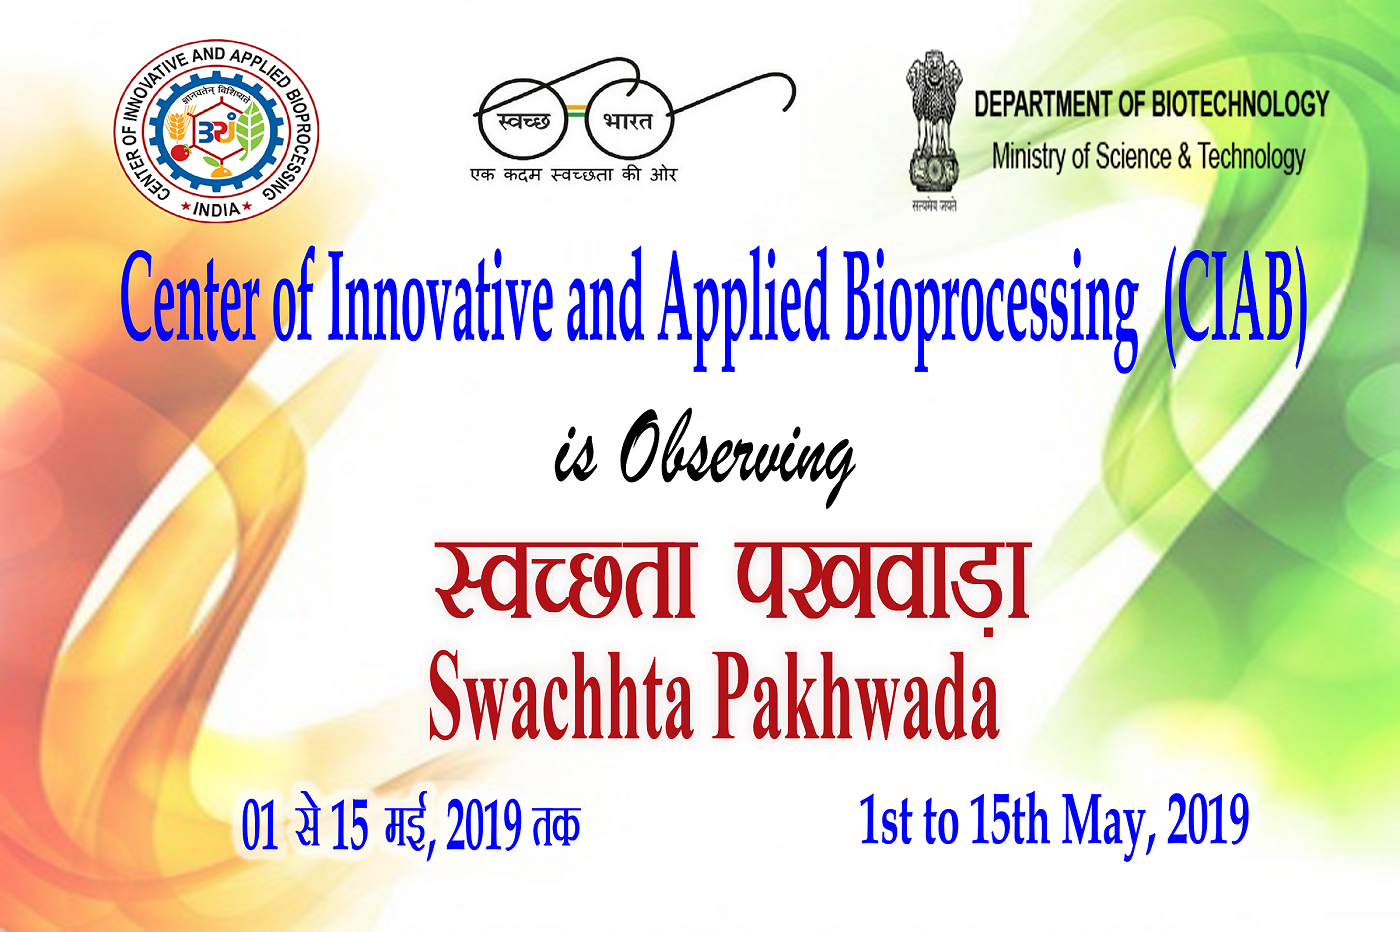 CIAB is observing Swachhta Pakhwara from 1st to 15th May, 2019